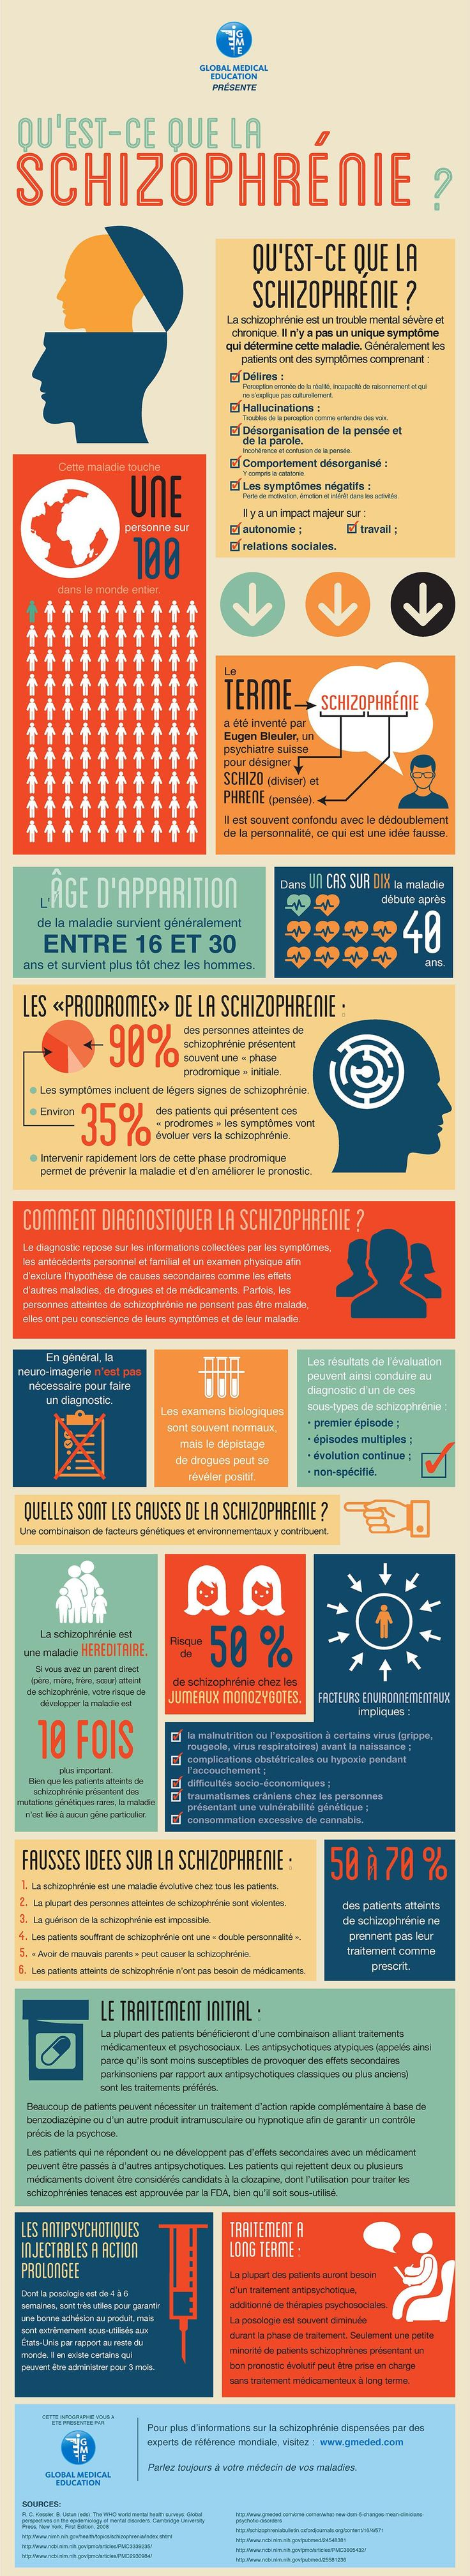 What Is Schizophrenia? | Global Medical Education